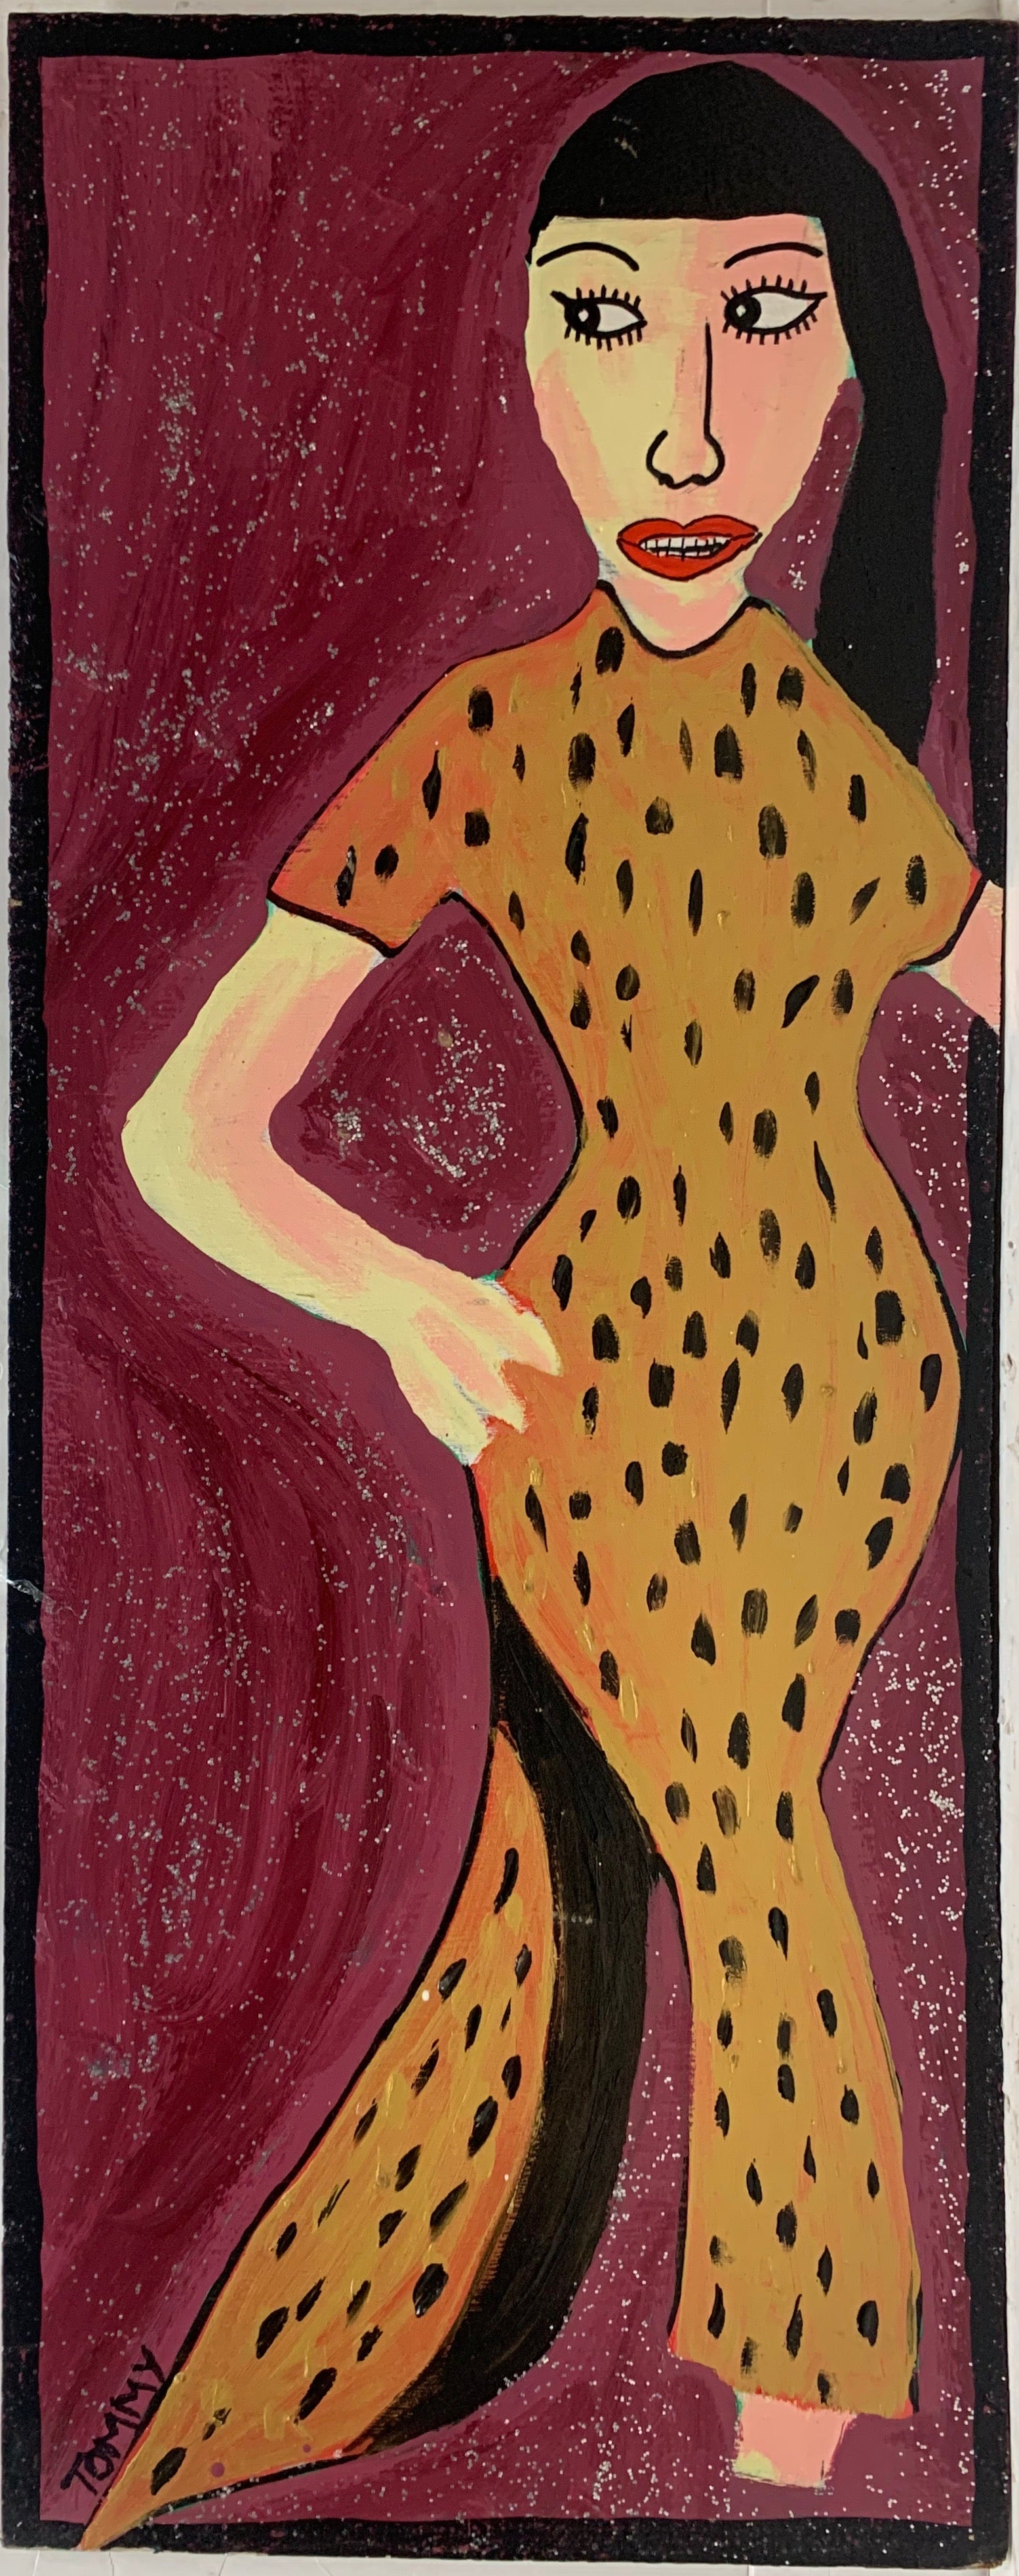 A Tommy Cheng portrait of Jadin Wong in a leopard-print dress against a maroon background.